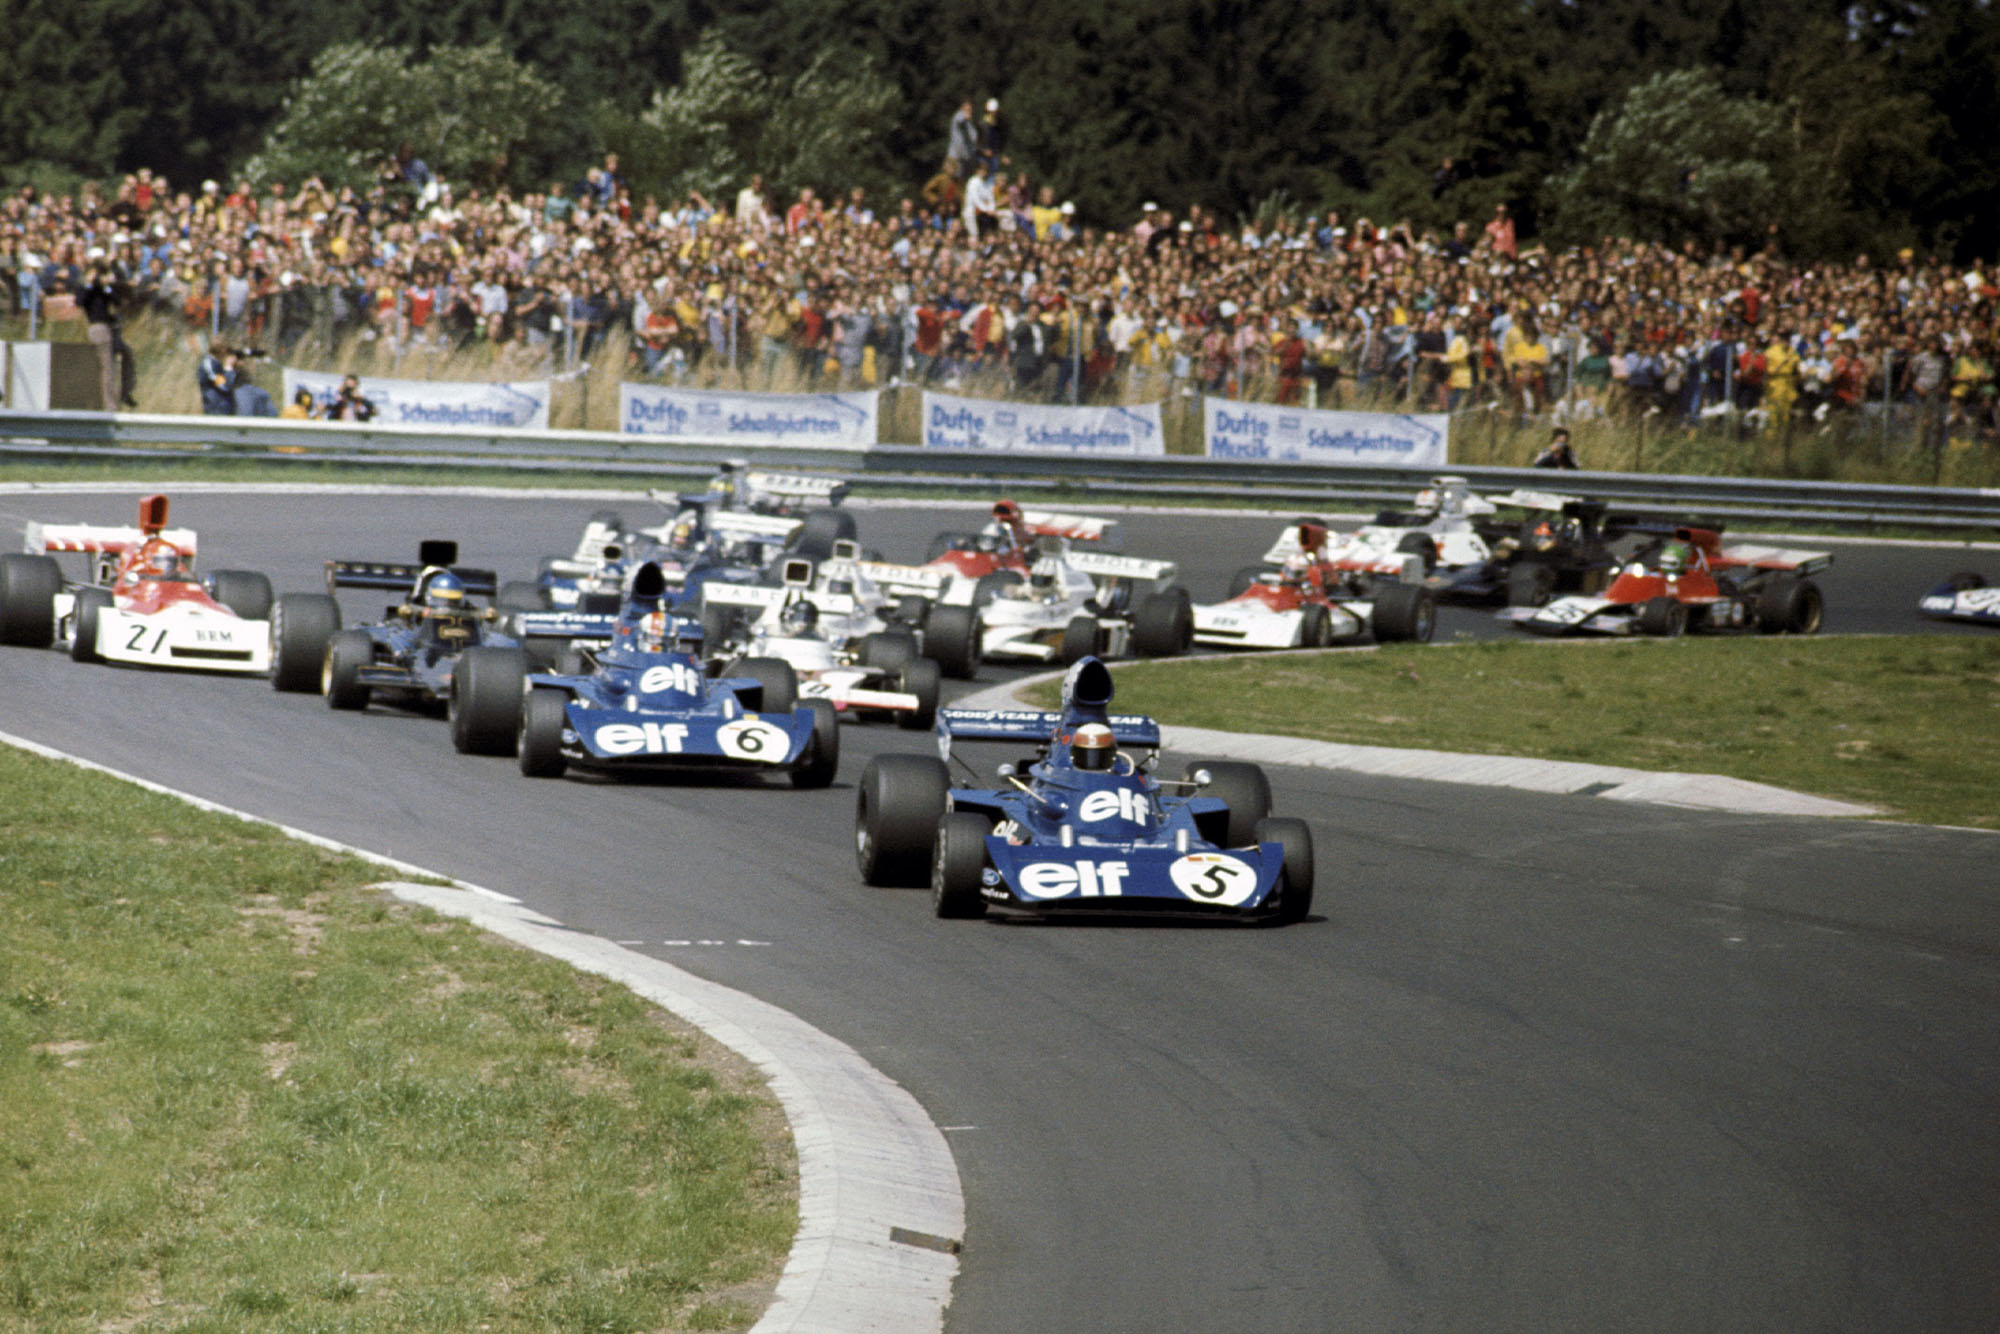 Jackie Stewart (Tyrrell) leads the field out of the first corner of the 1973 german Grand Prix, Nurburgring.